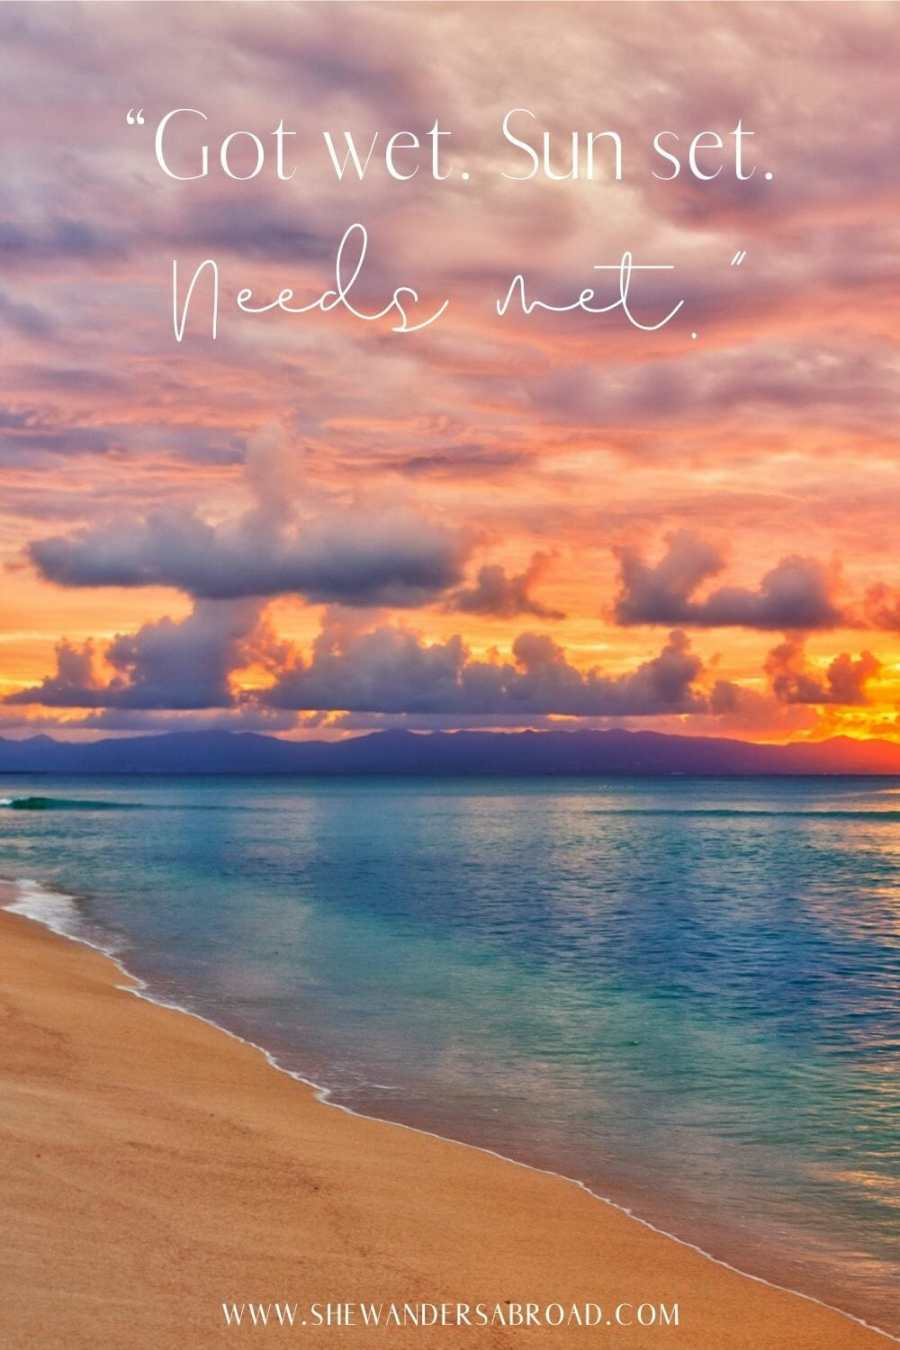 Captions and quotes about sunsets on the beach